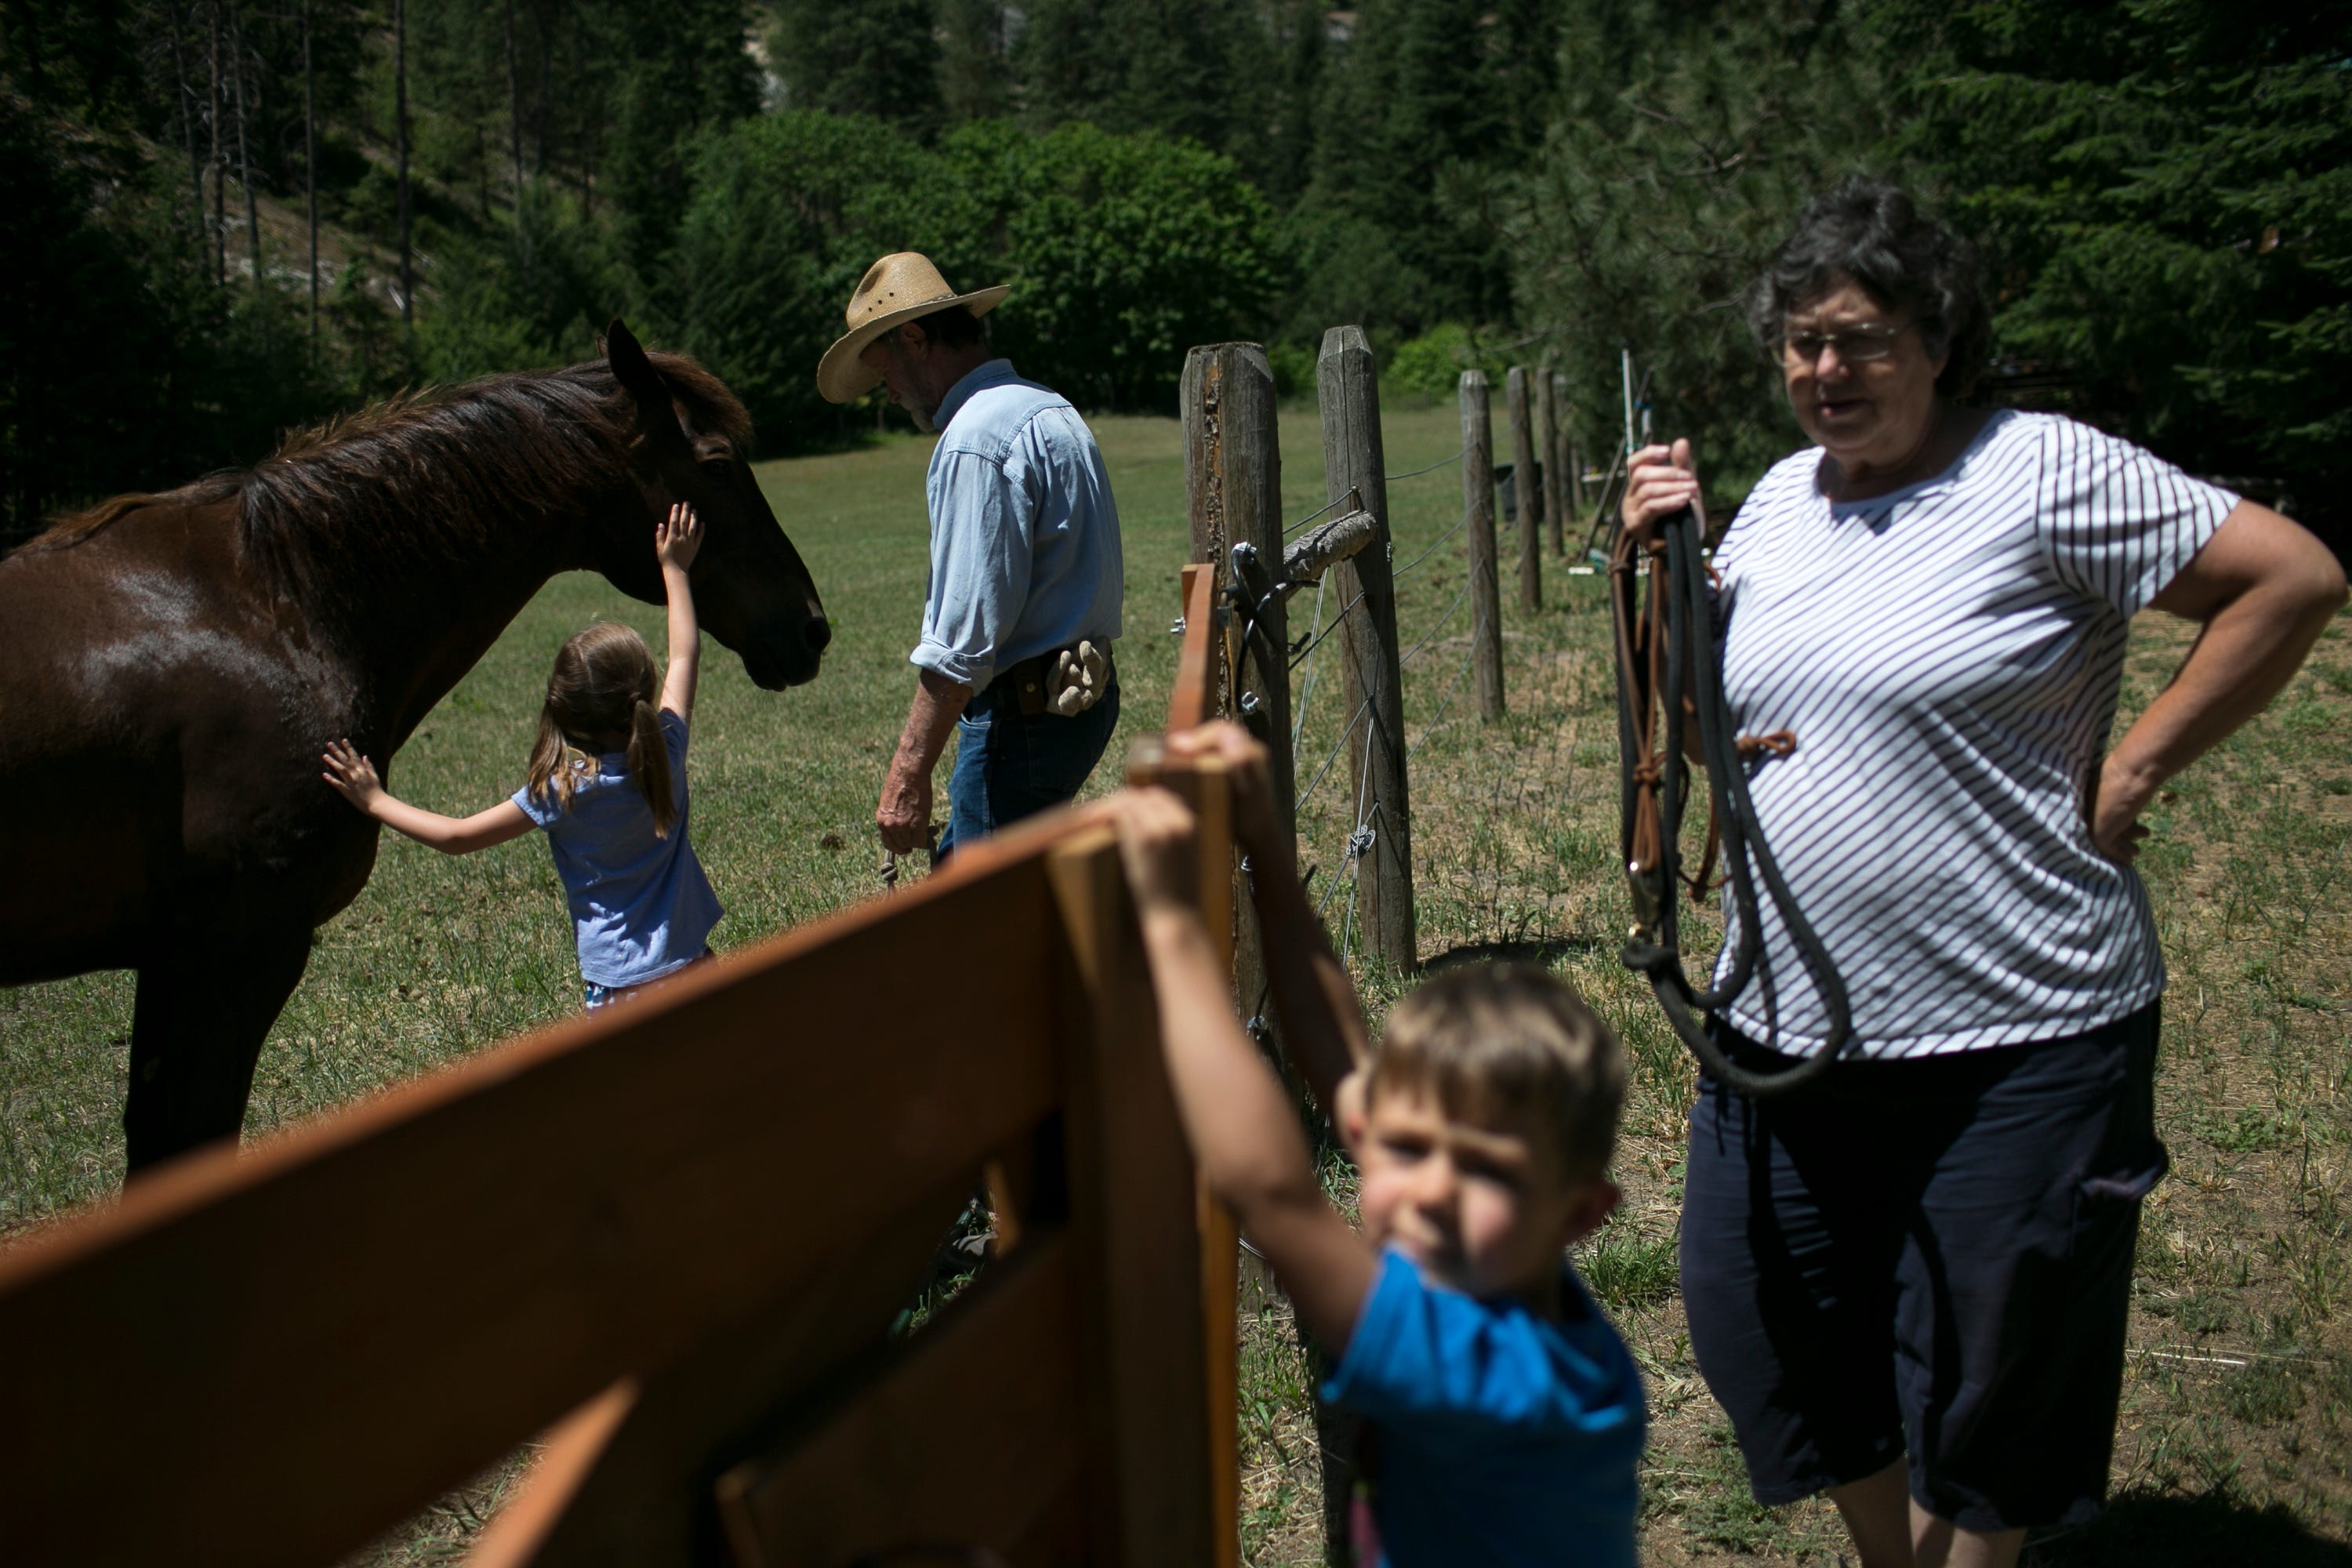 From left-to-right: 6-year-old Brookelyn Frank brings in the family's horse with her grandfather Ross Frank while 4-year-old Tanner Frank and Tanner and Brookelyn's grandmother Marianne Frank wait to open the gate on the Frank's farm in Leavenworth, Washington, on June 17, 2019. Frank and his wife Marianne moved to the property in 1980s and have been operating it as a horse ranch and event venue ever since. Frank has volunteered on several wildfires in the area and plays a big part in educating the community on fuel reduction.